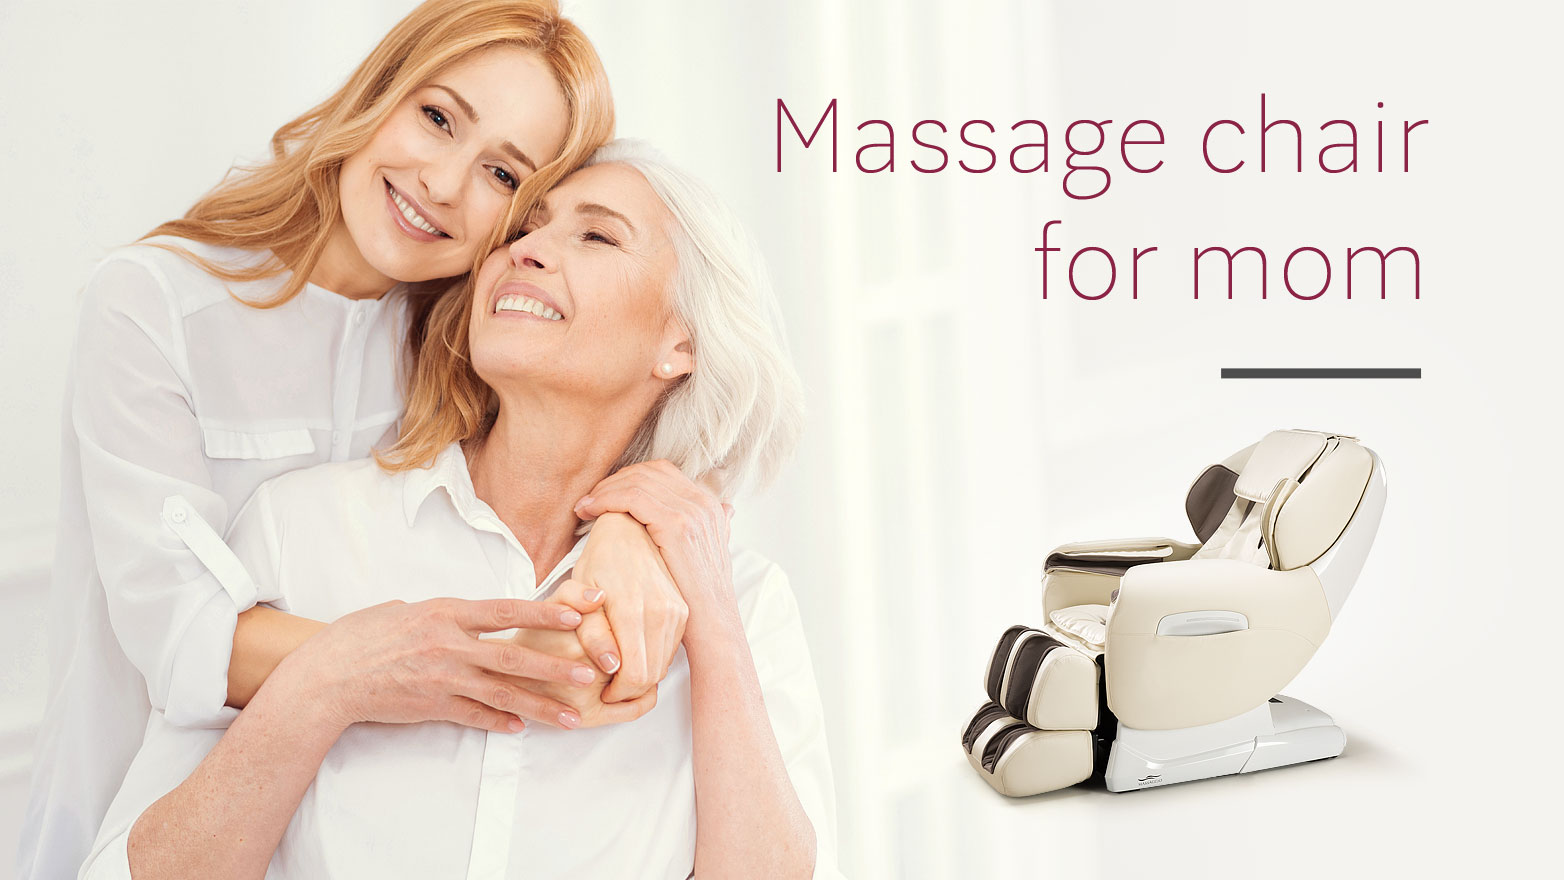 Massage chair for mom